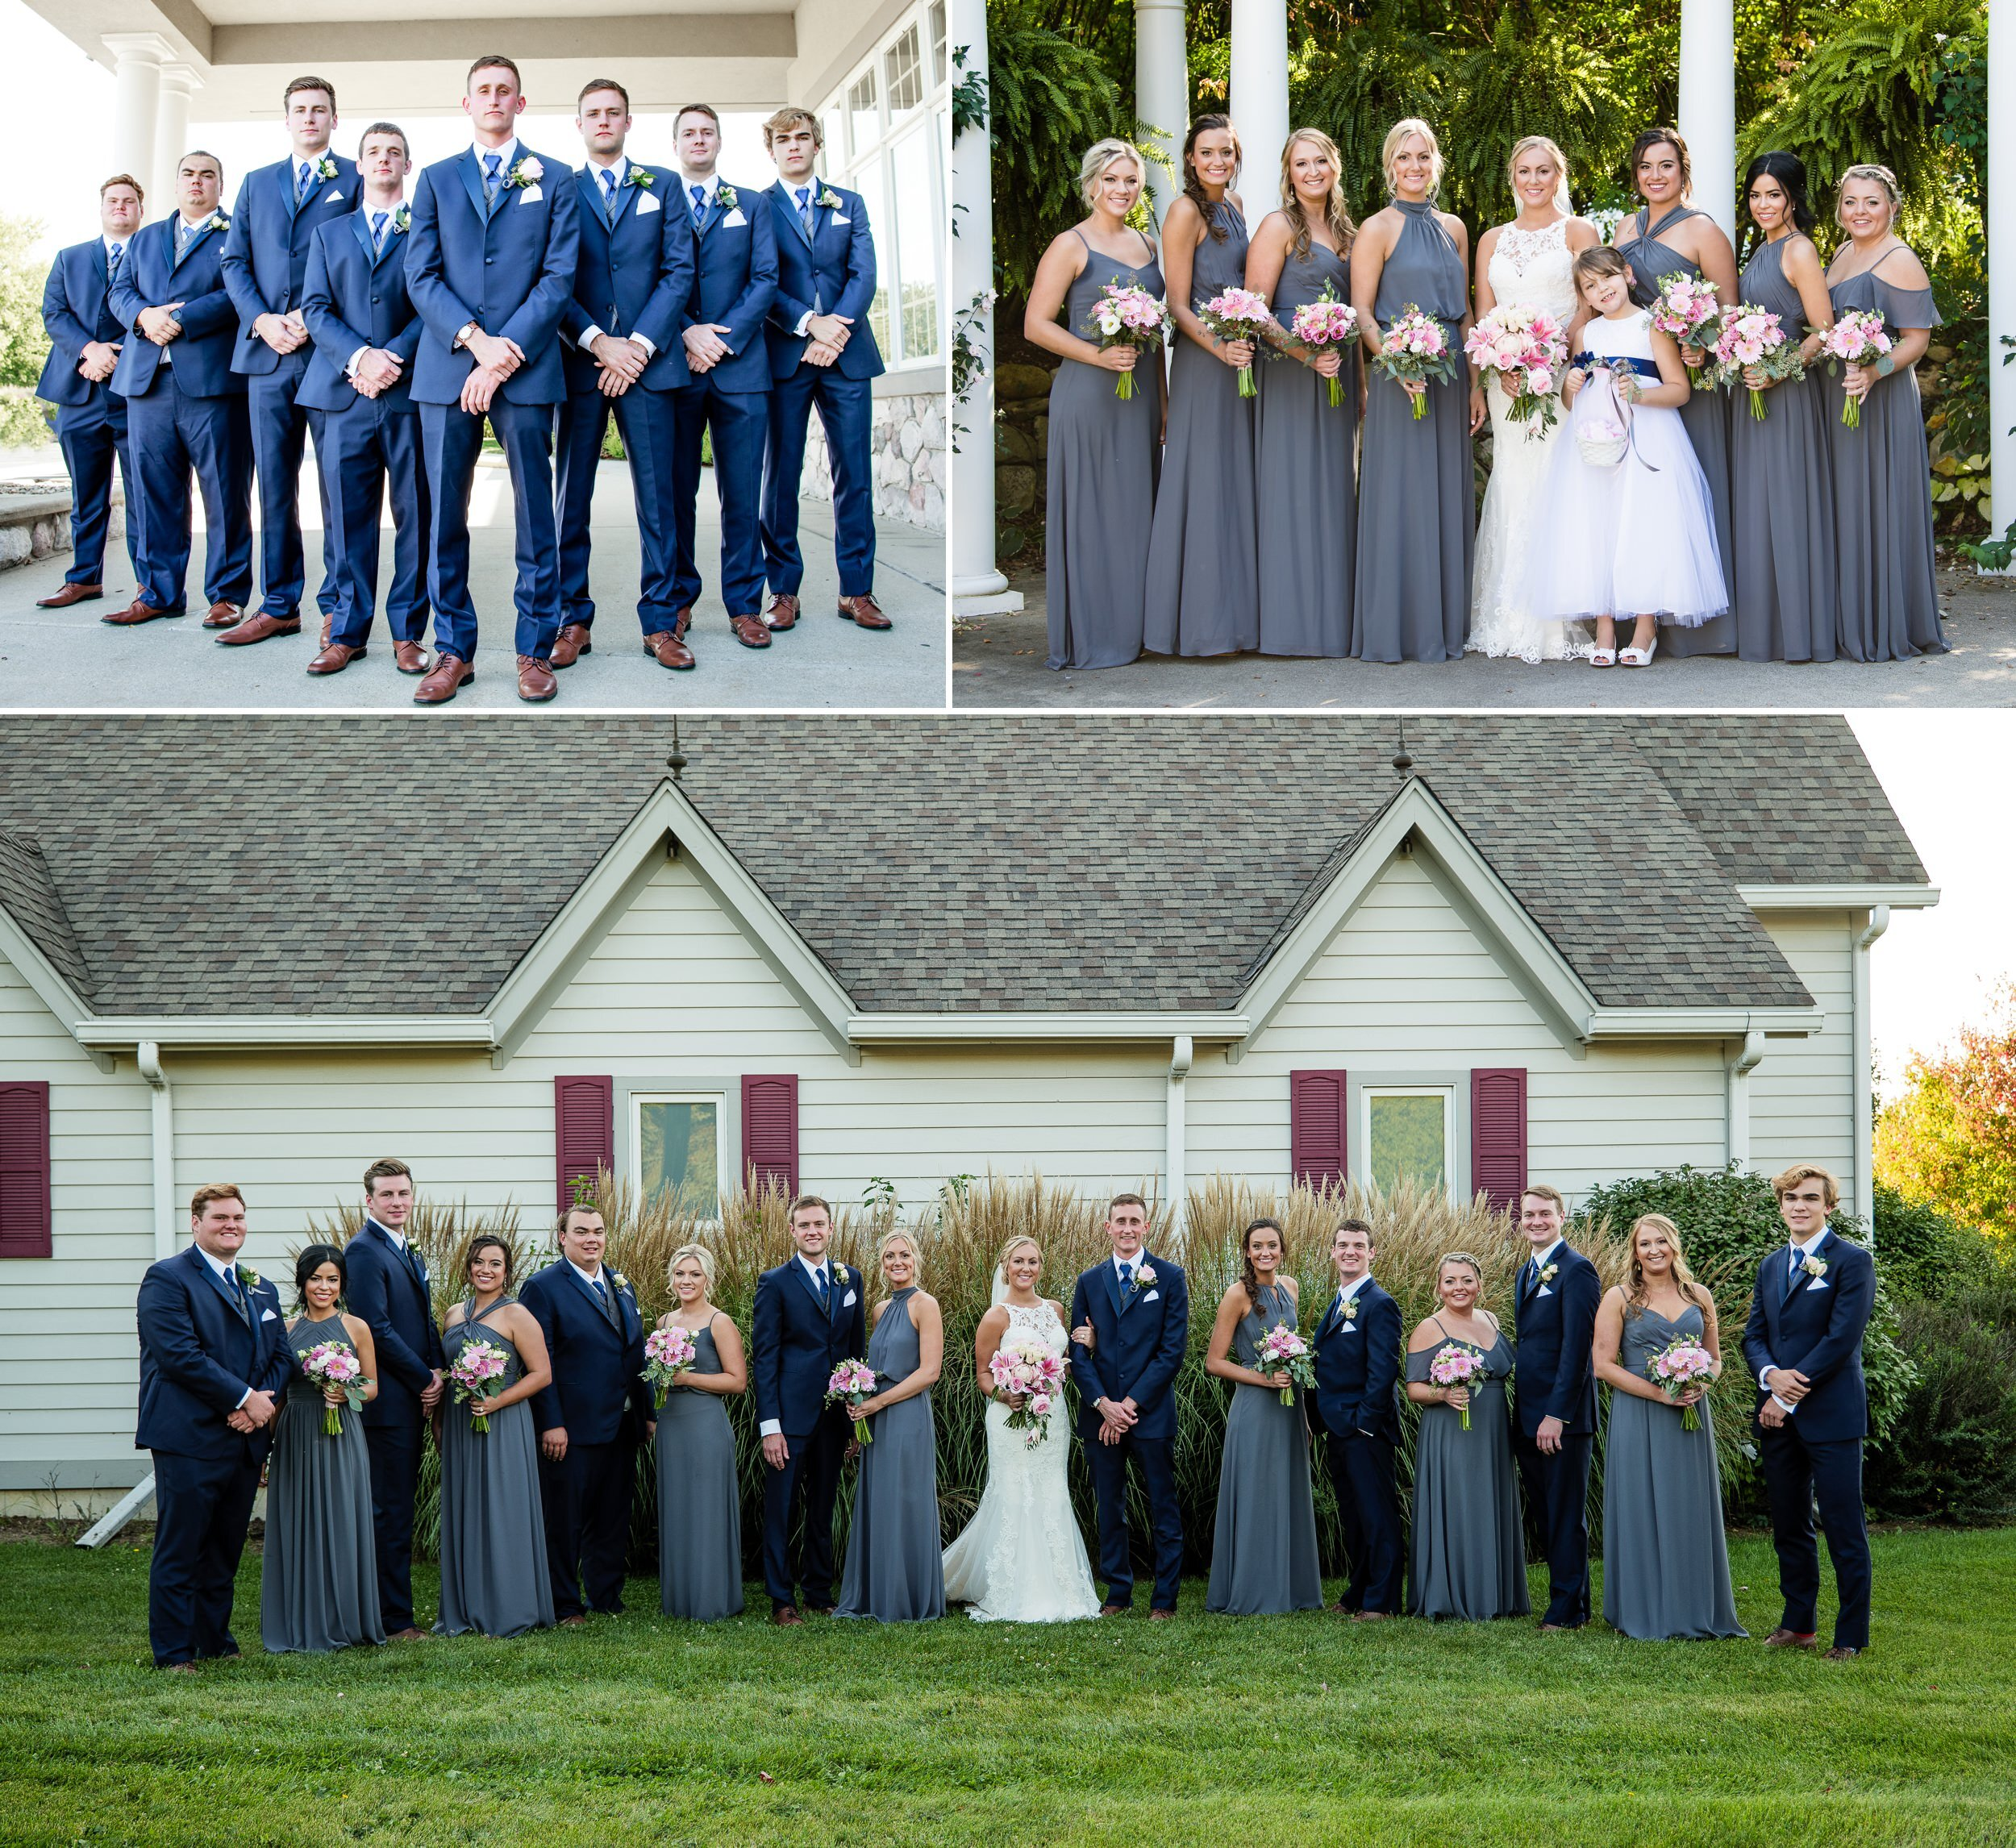 Wedding party group photos at Aberdeen Manor.